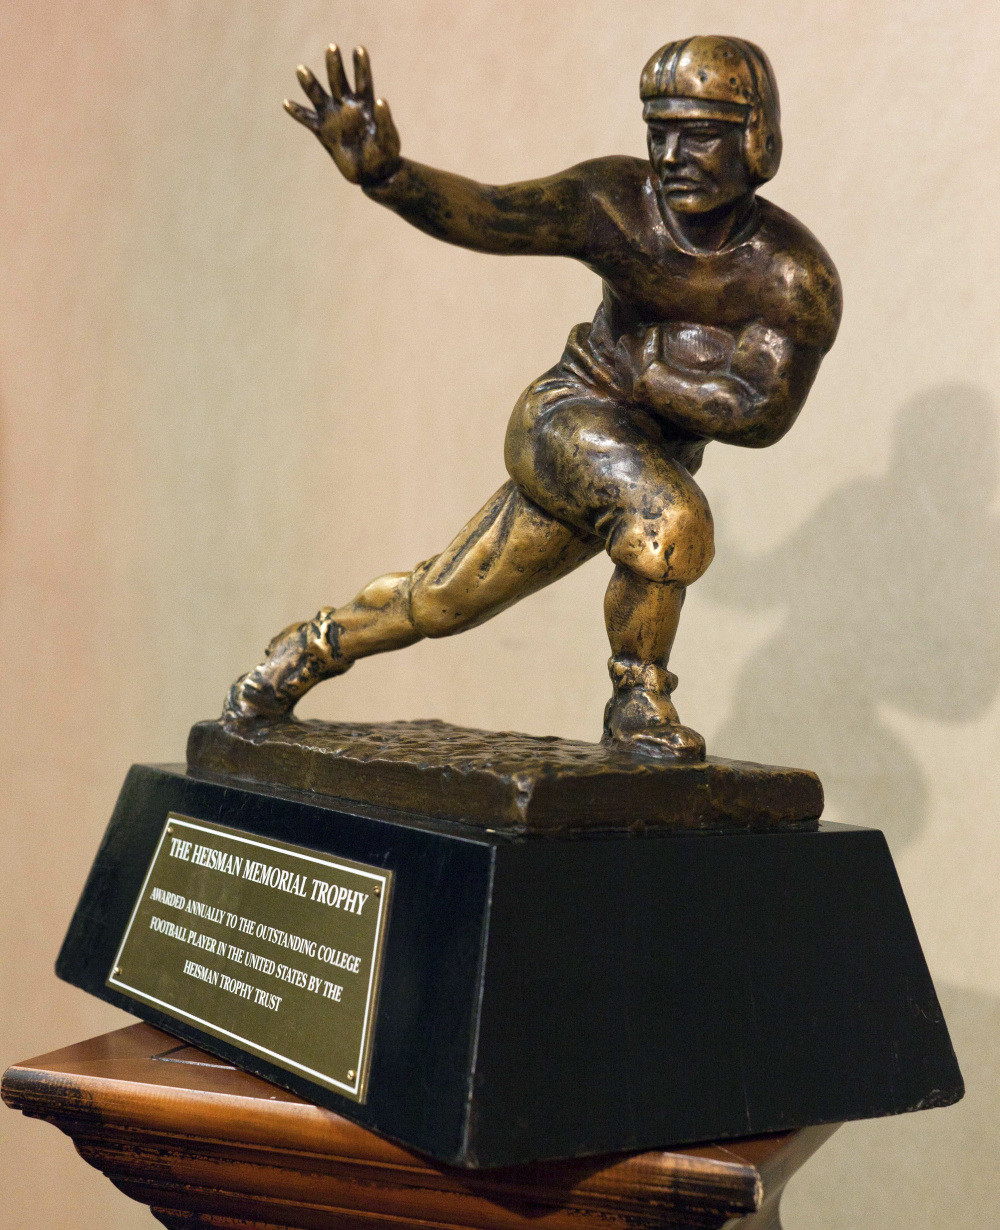 The Happy Heisman.